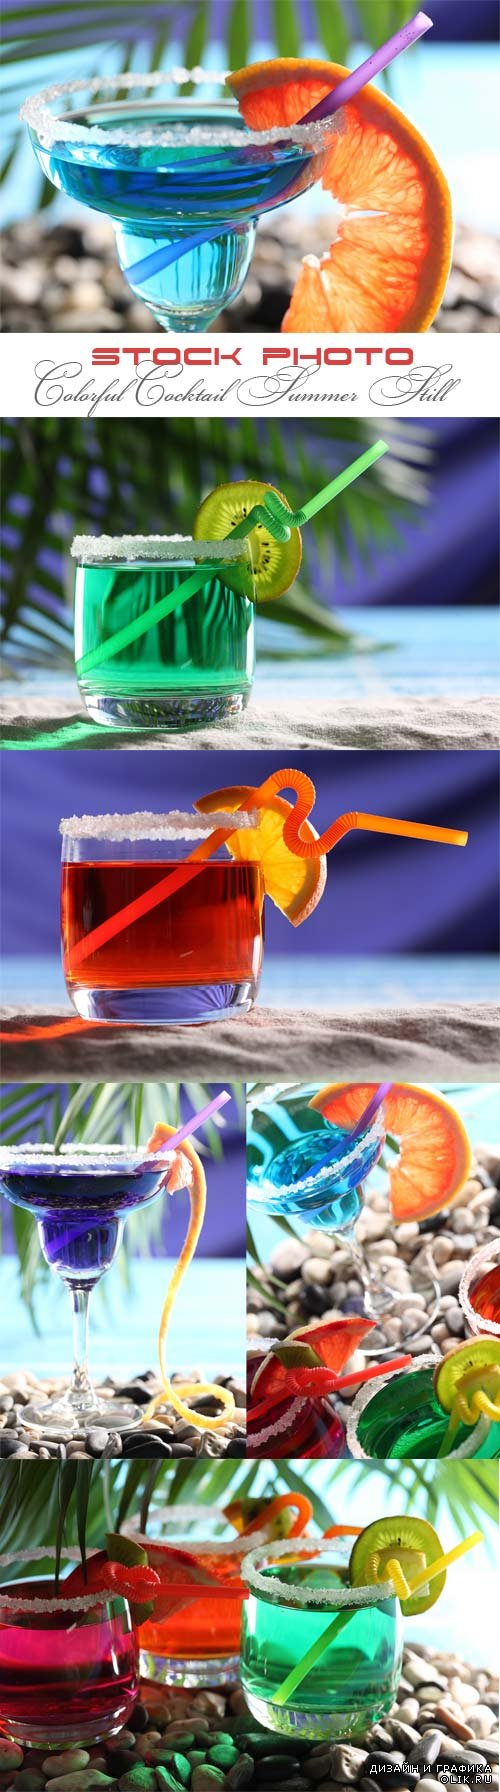 Colorful Cocktail Summer Still